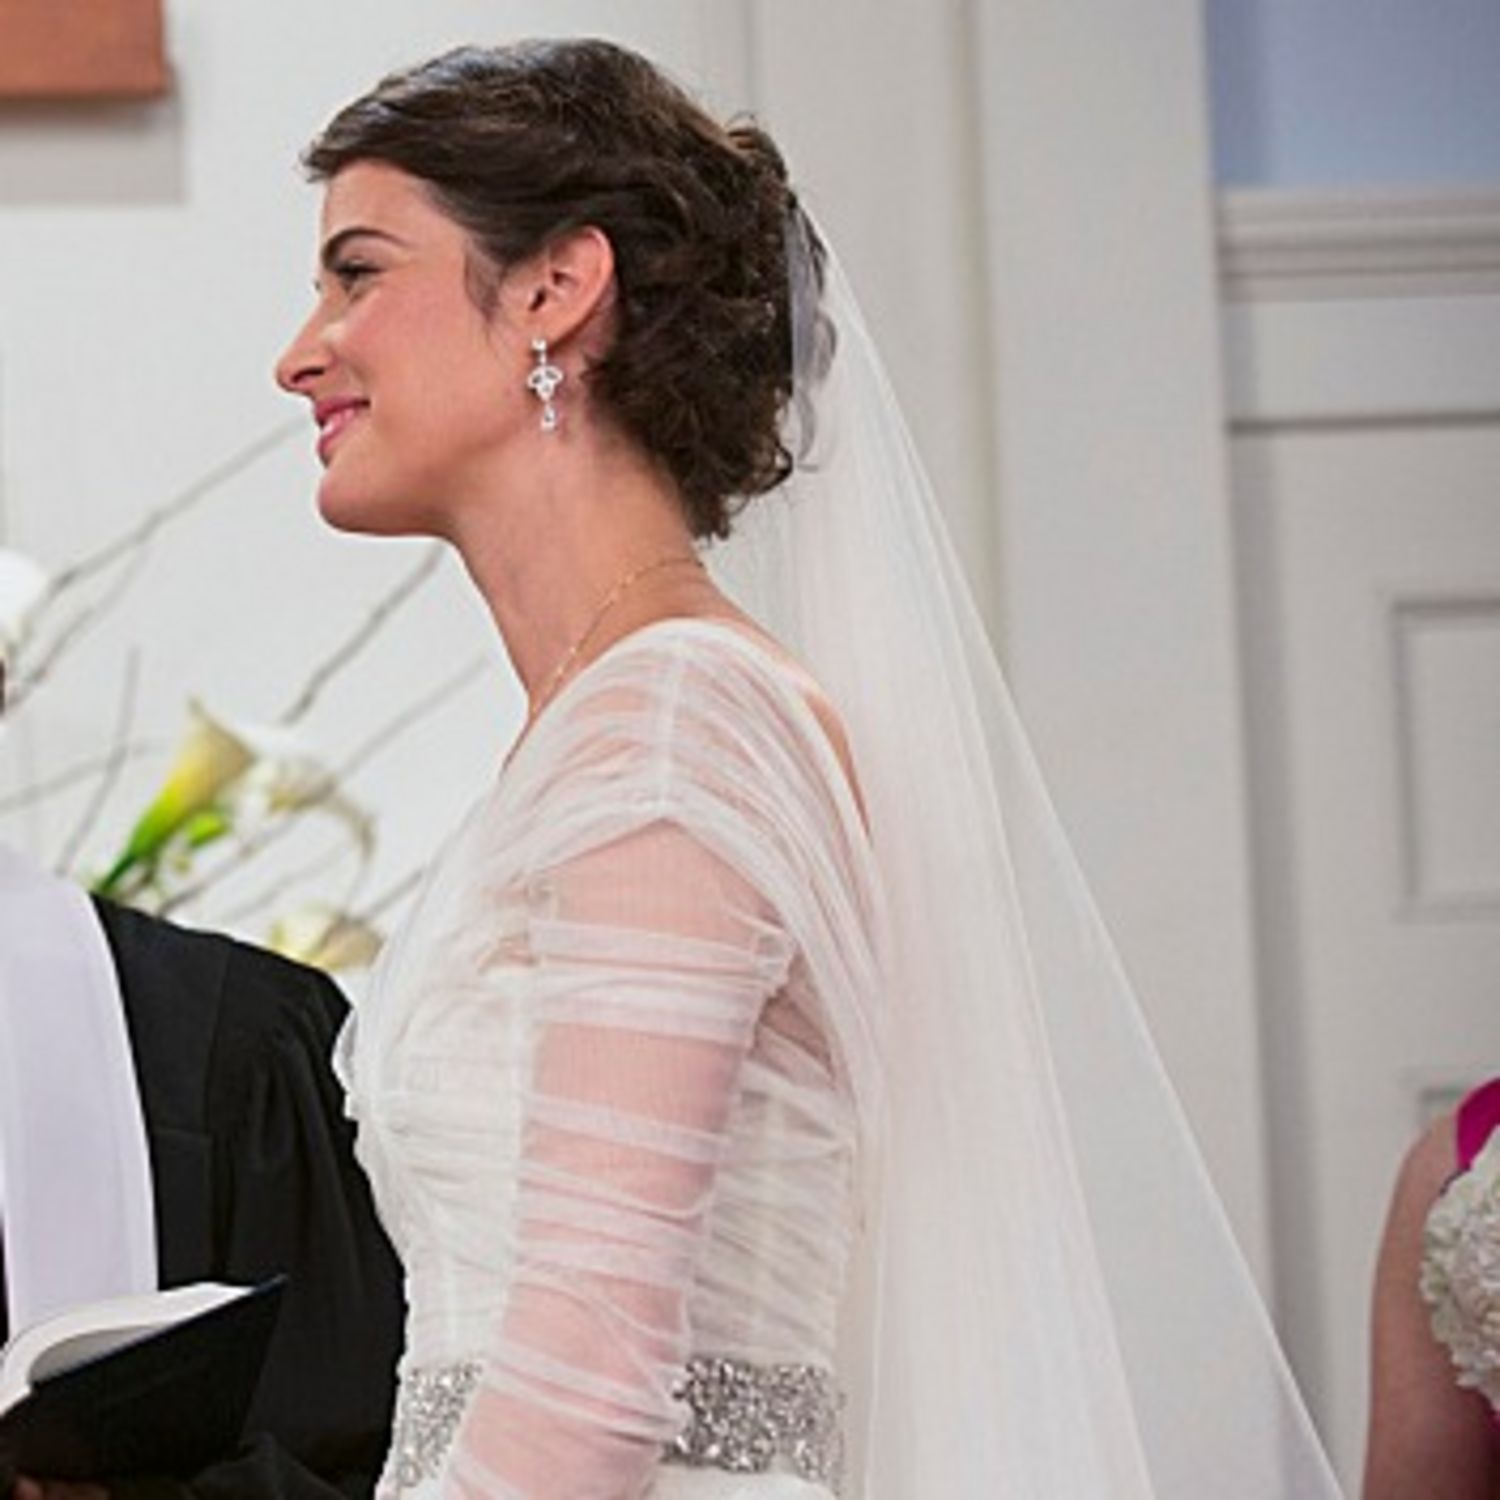 mother wedding dresses Wondering Where to Find the HIMYM Wedding Dress Here Are All the Details